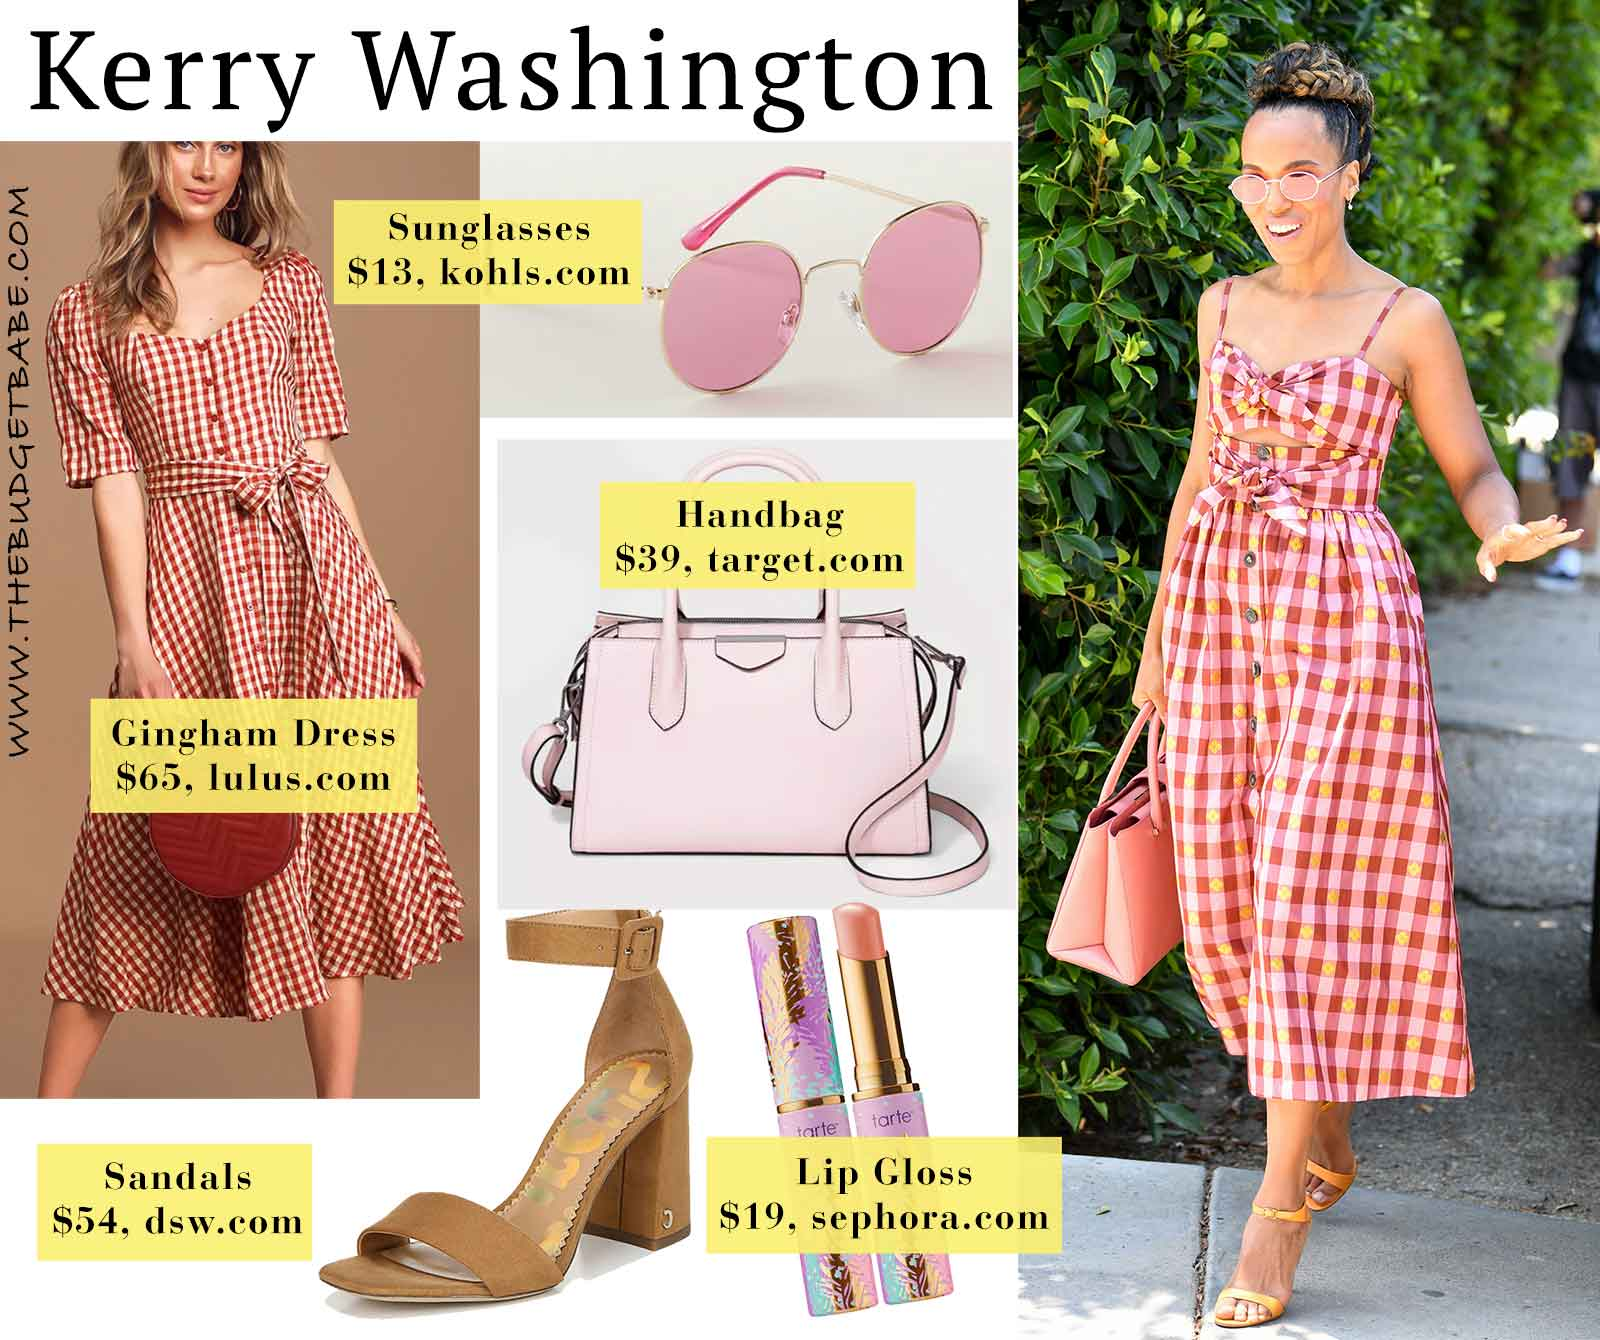 Kerry Washington's gingham dress and strappy sandals look for less